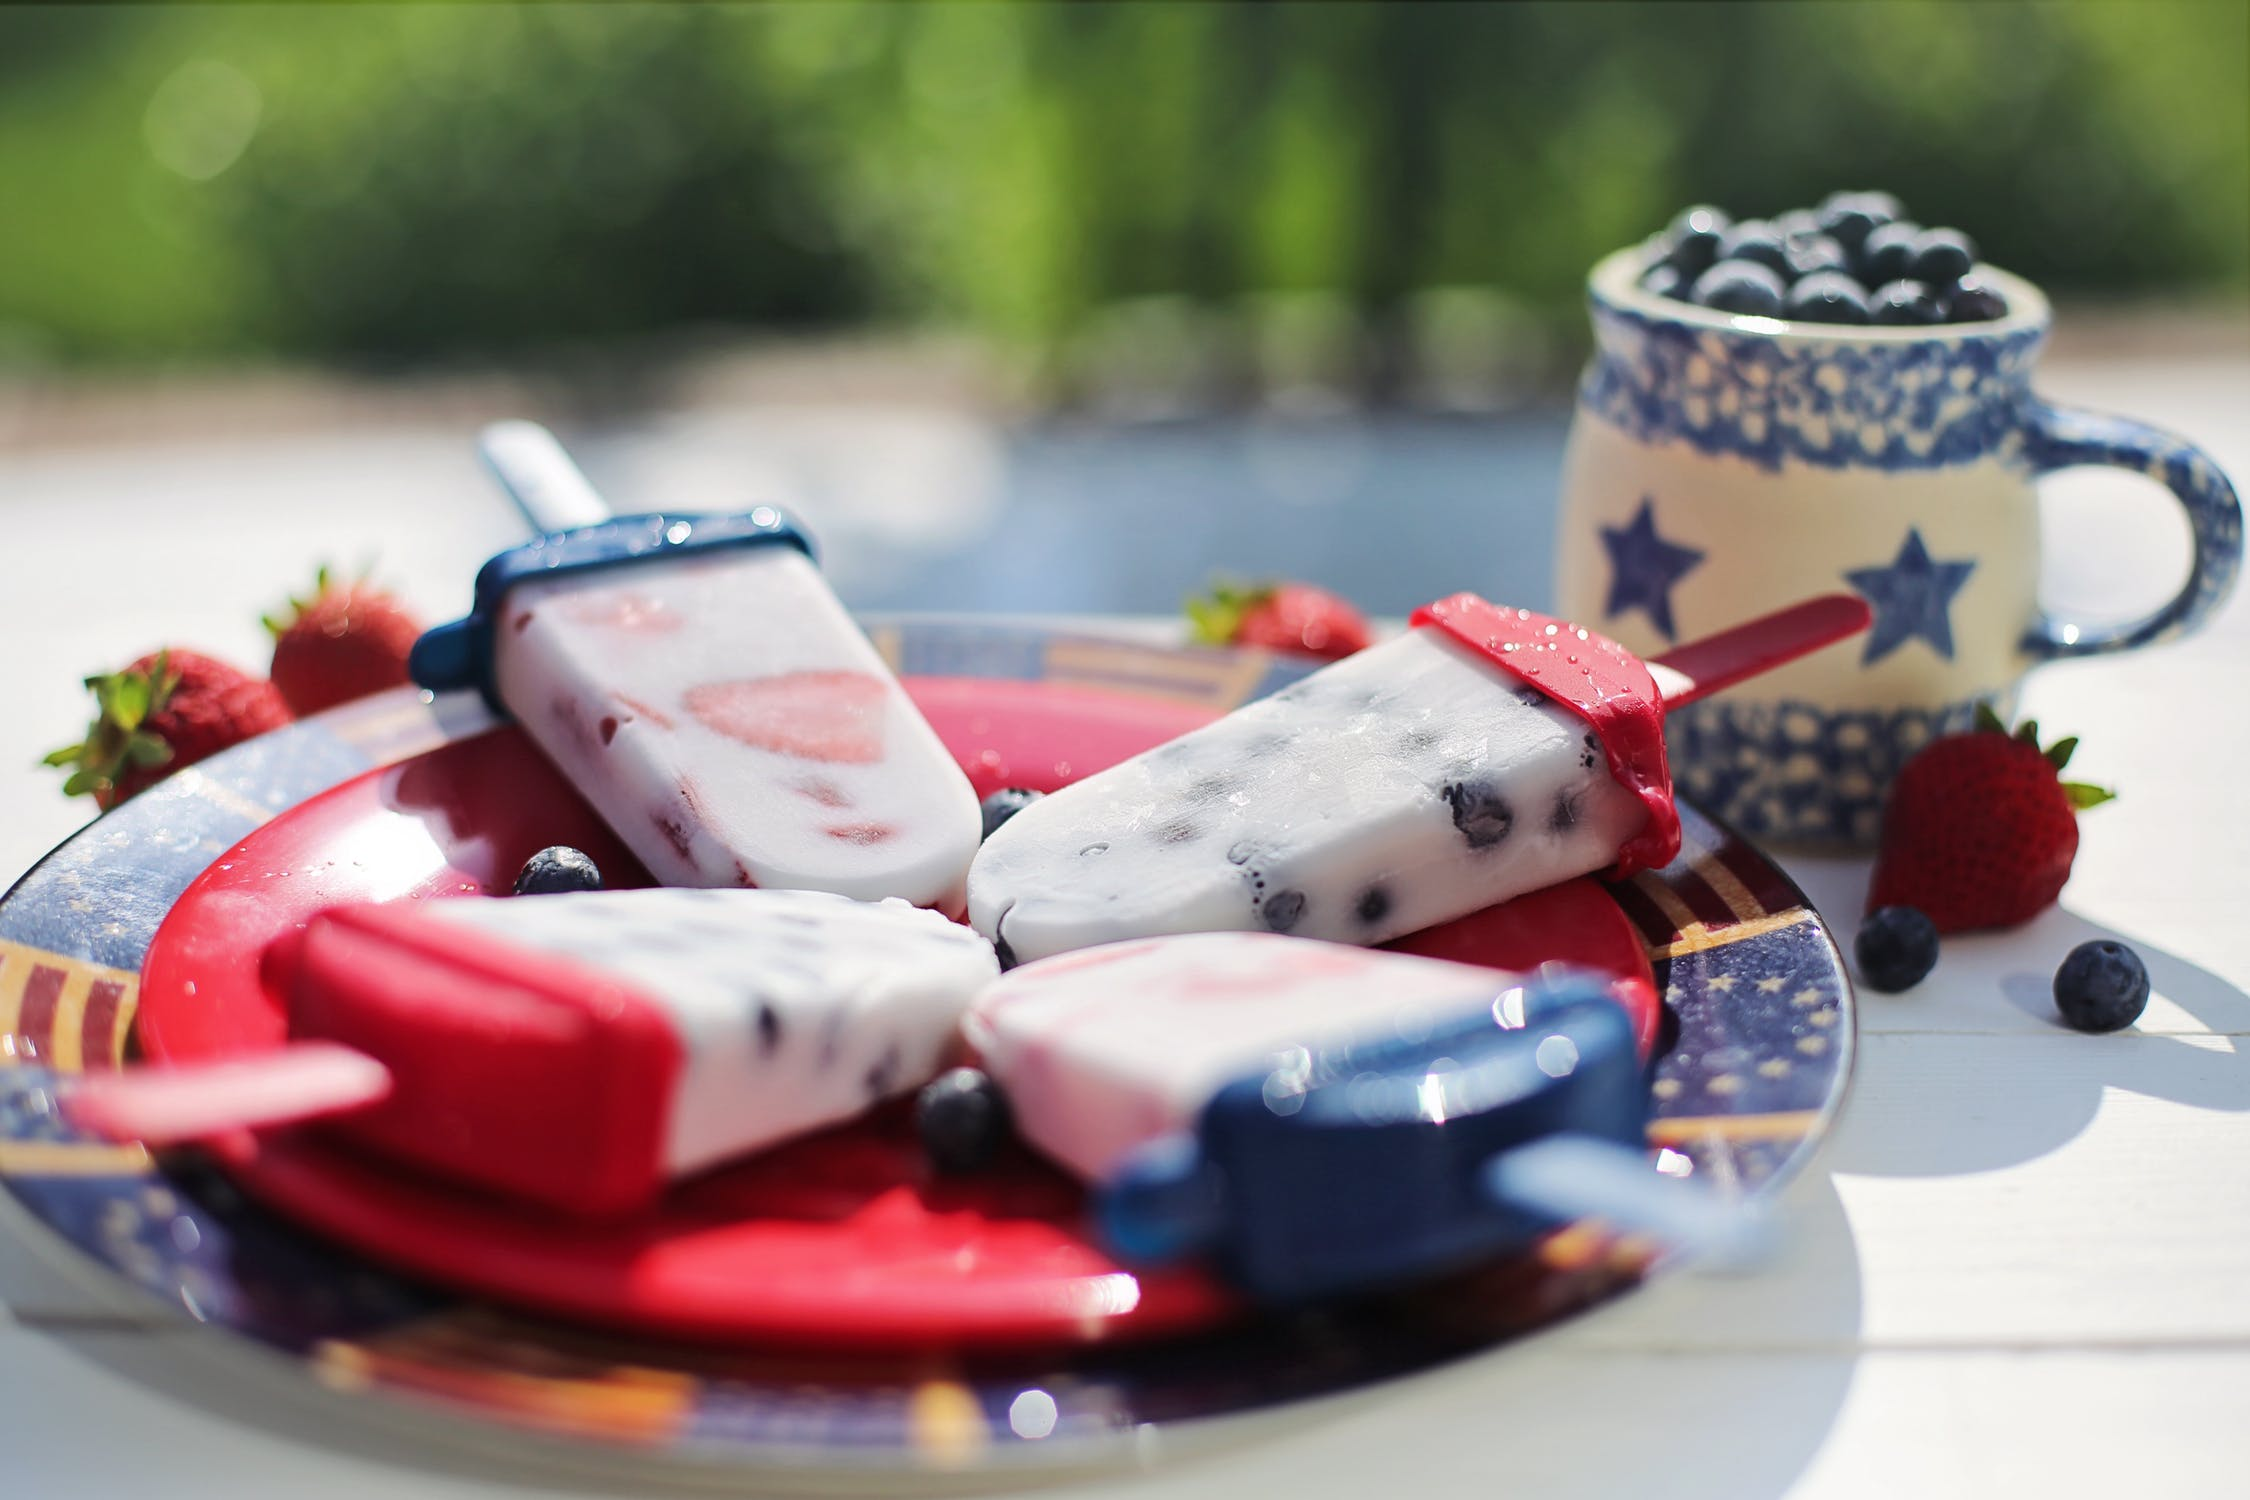 Patriotic colored frozen fruit bars on a plate beside fresh cup of blue berries and scattered strawberries